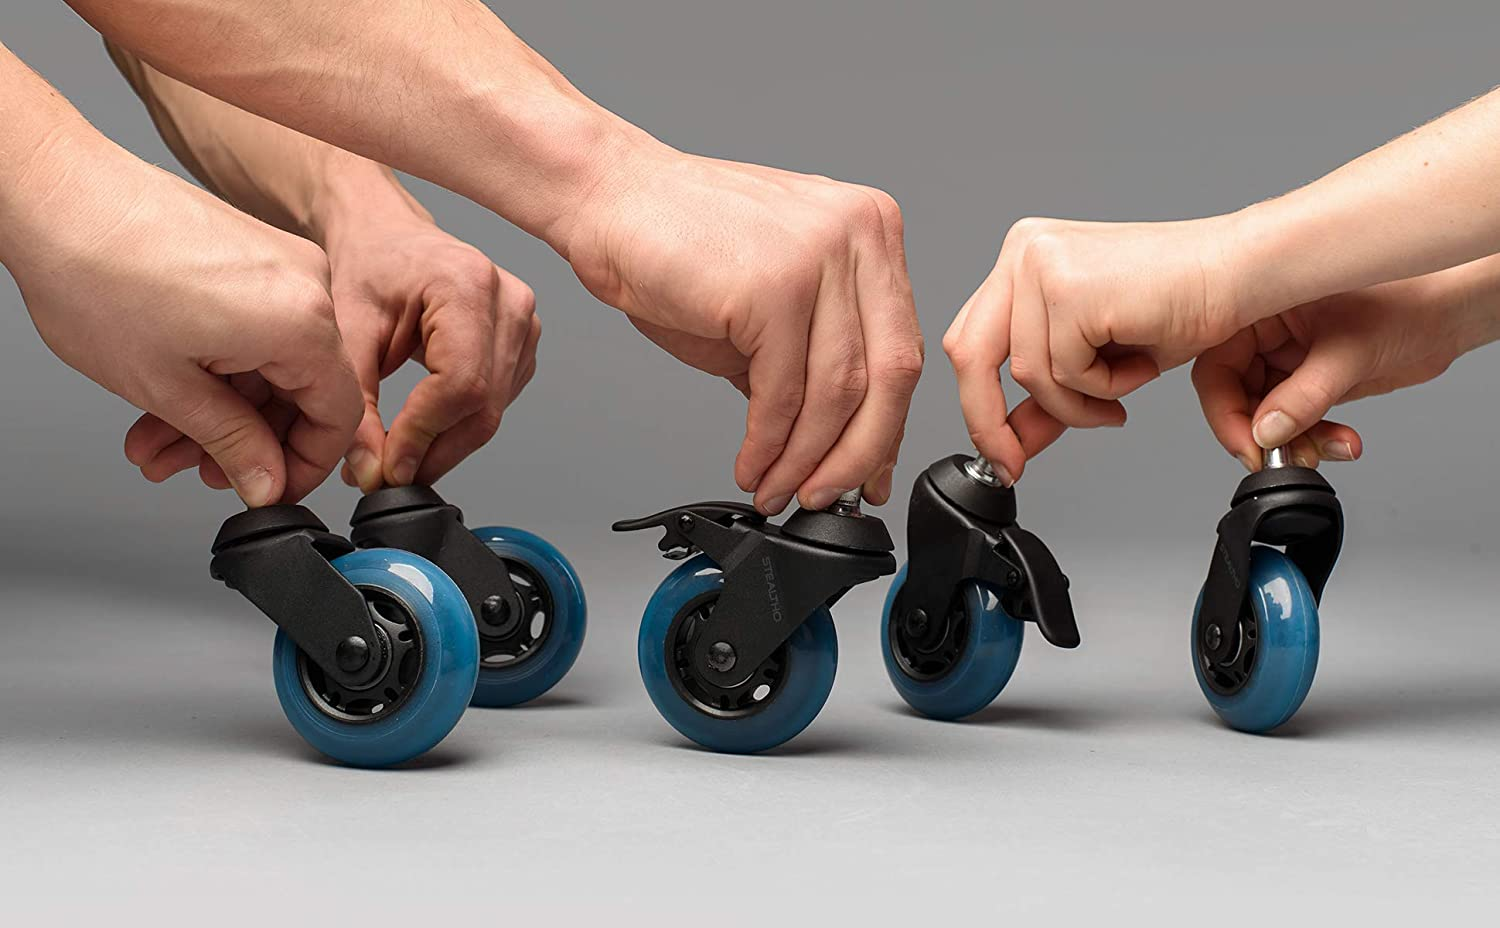 Quick /& Quiet Rolling Over The Cables with Brakes Blue Polyurethane STEALTHO Replacement Office Chair Caster Wheels Set of 5 IKEA Stem 3//8 Protect Your Floor No More Chair Mat Needed